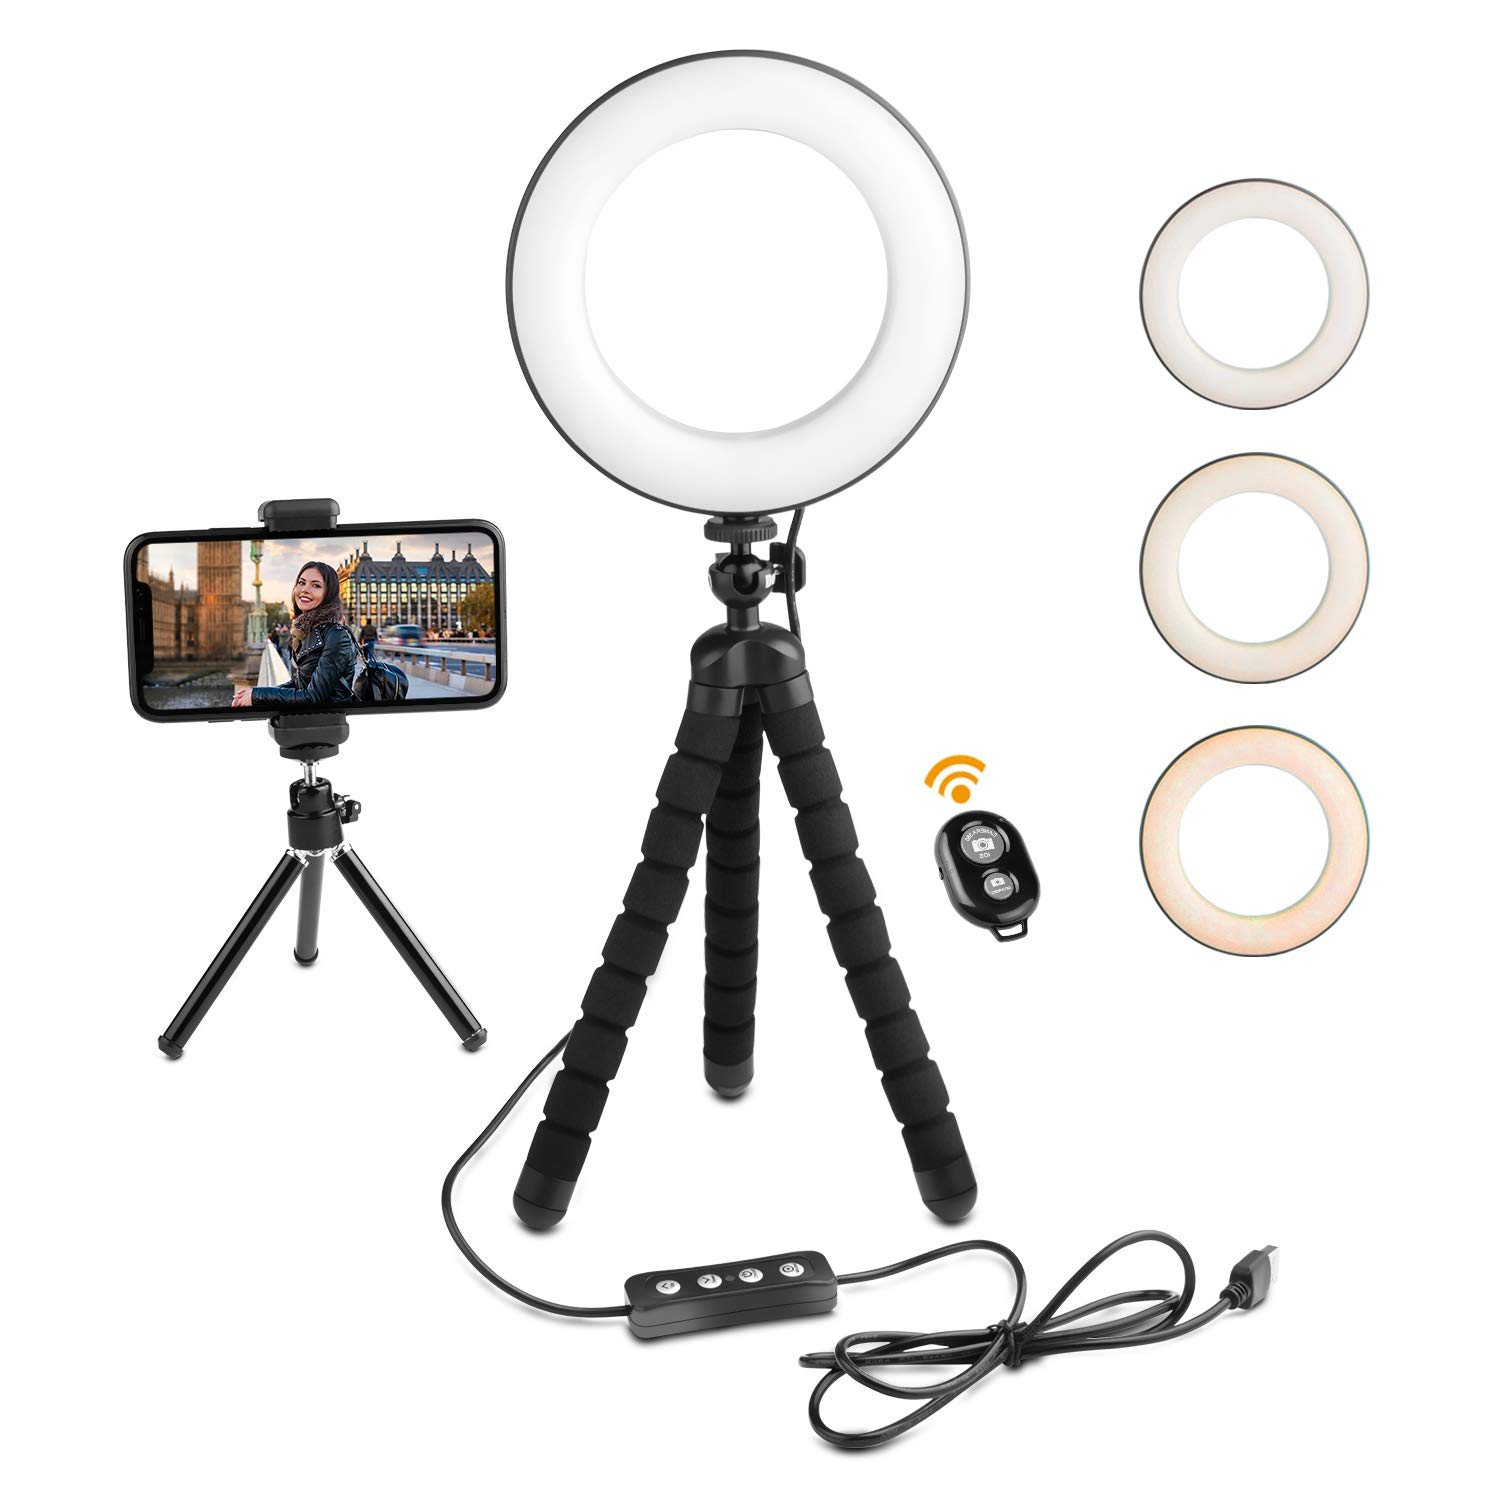 Deyard LED Ring Light with Tripod Stand & Cell Phone Holder for iPhone GoPro Xiaomi Yi Action Camera Suitable for YouTube Video and Makeup, with 3 Light Modes & 12 Brightness Levels (6 inch) by Deyard